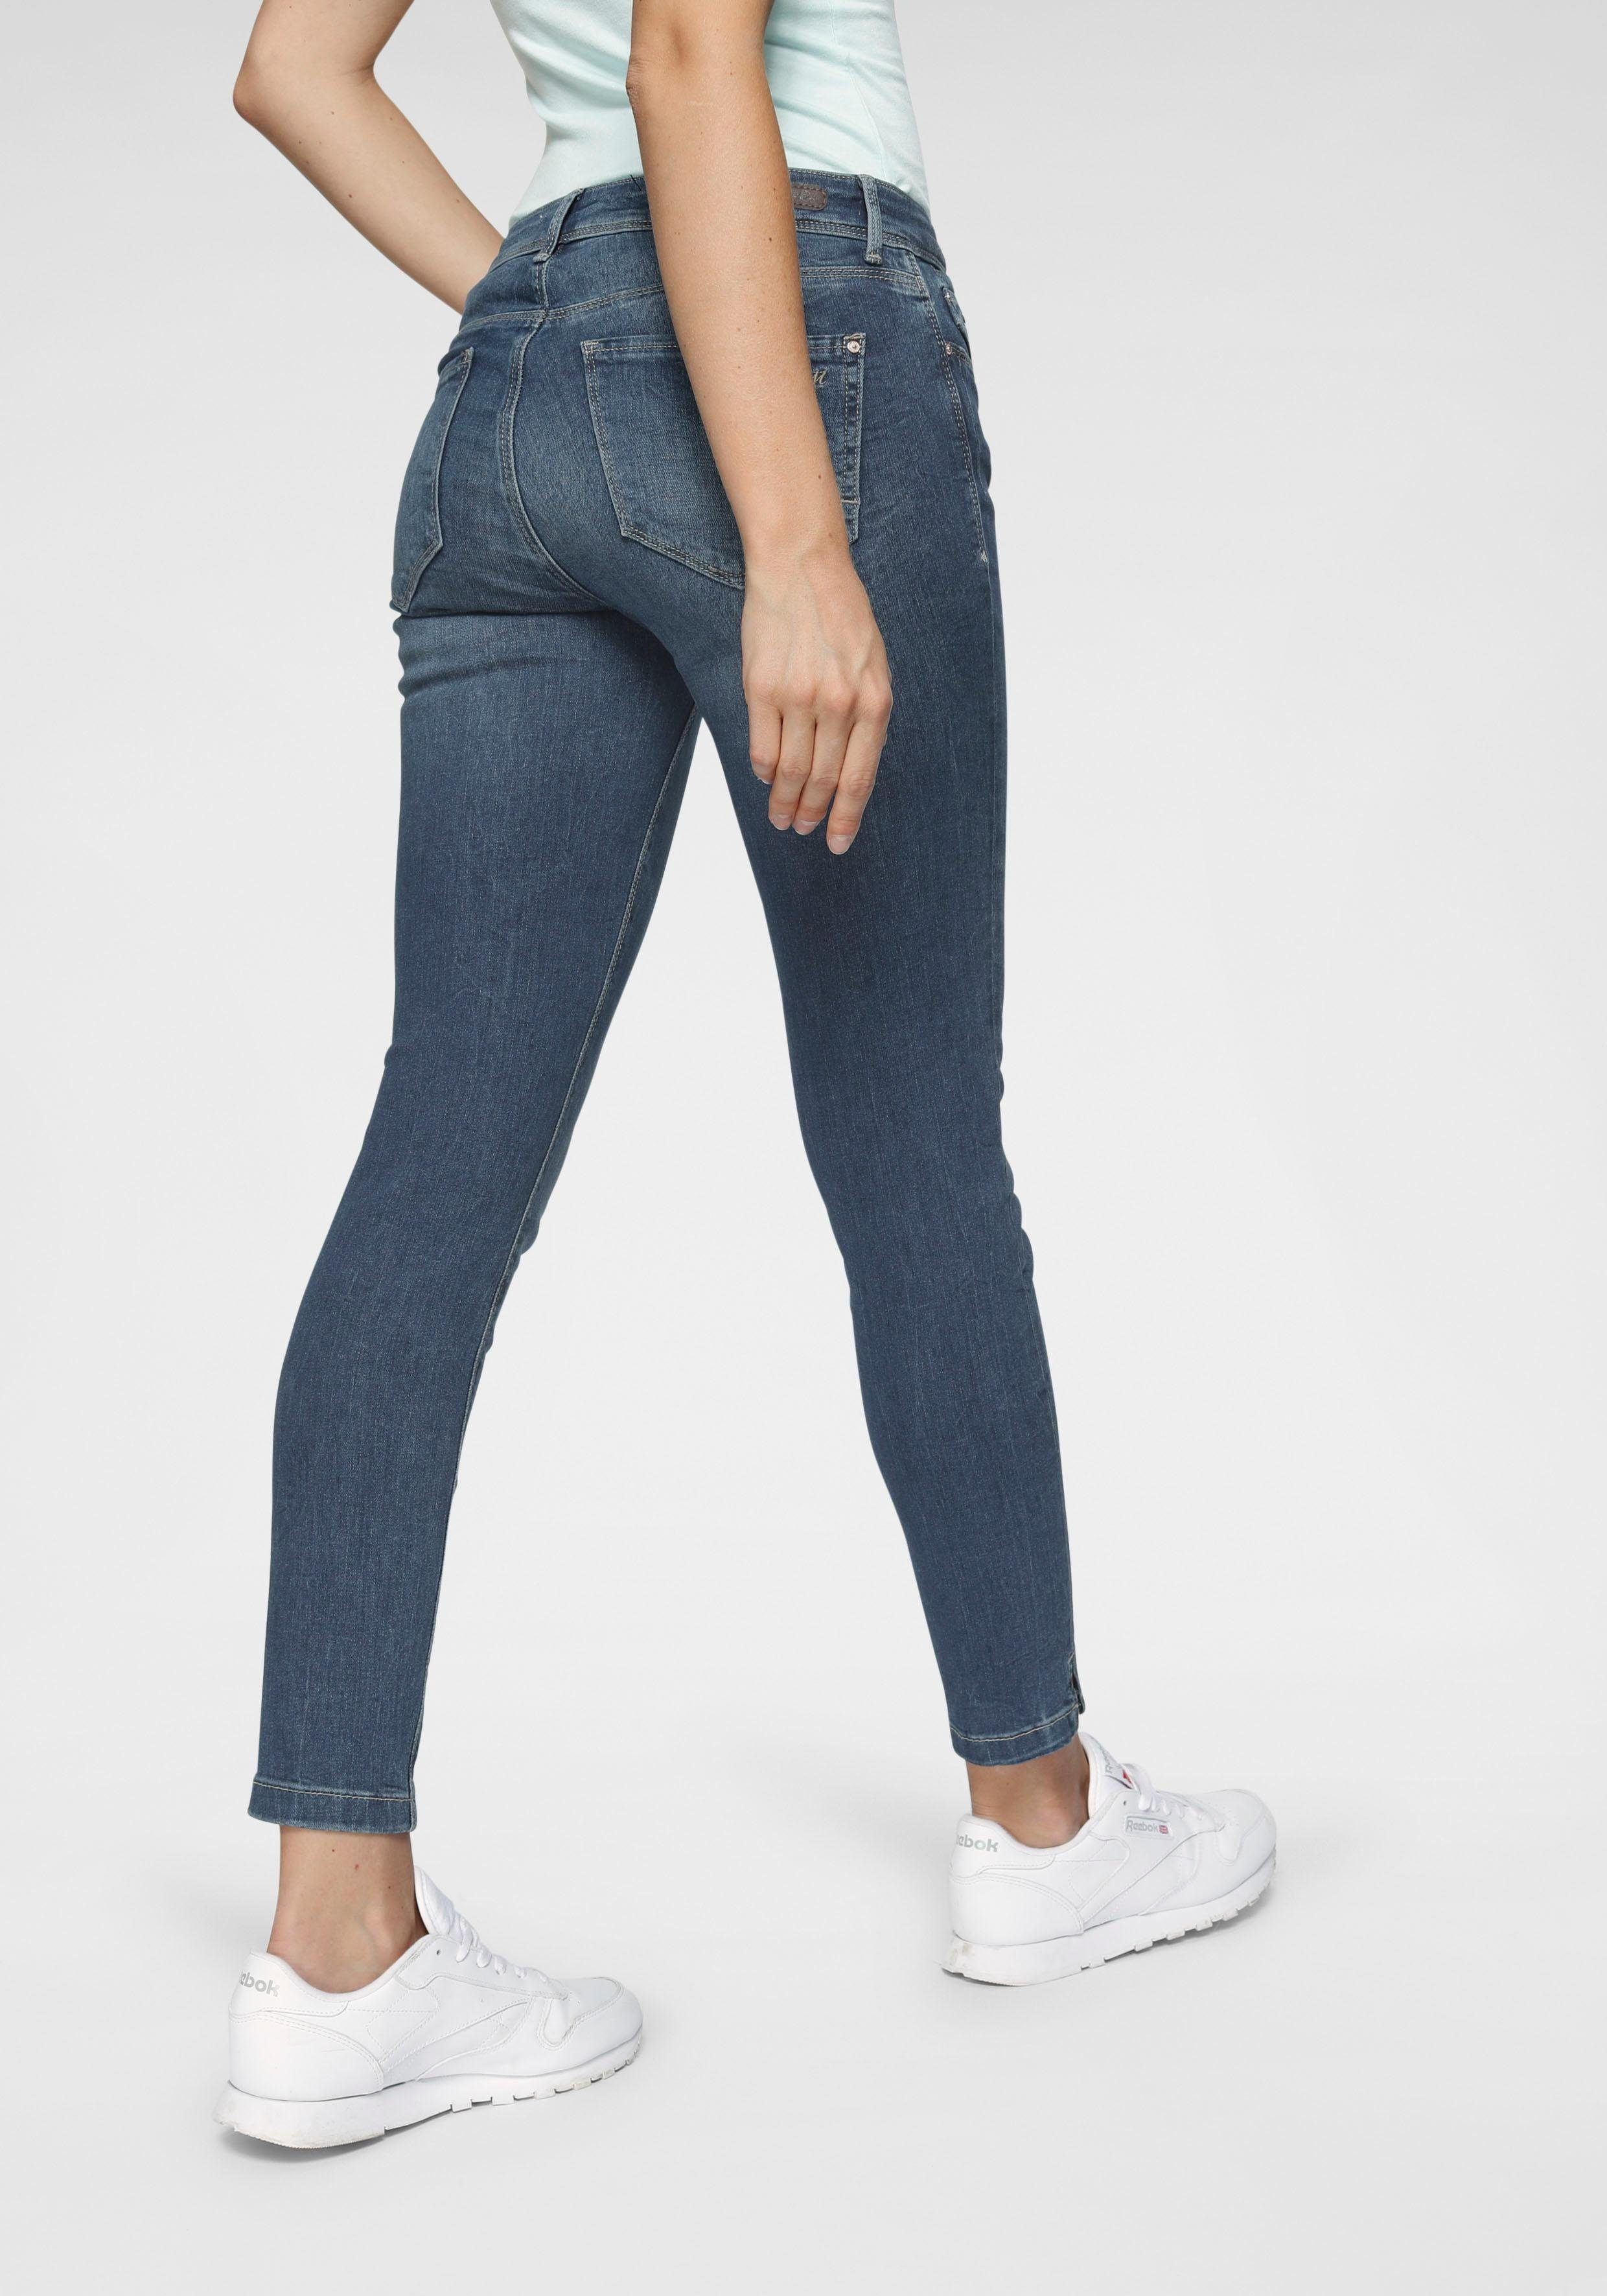 Mavi Skinny fit Jeans »ADRIANA ANKLE« in Crash und Crinkle Optik online kaufen | OTTO